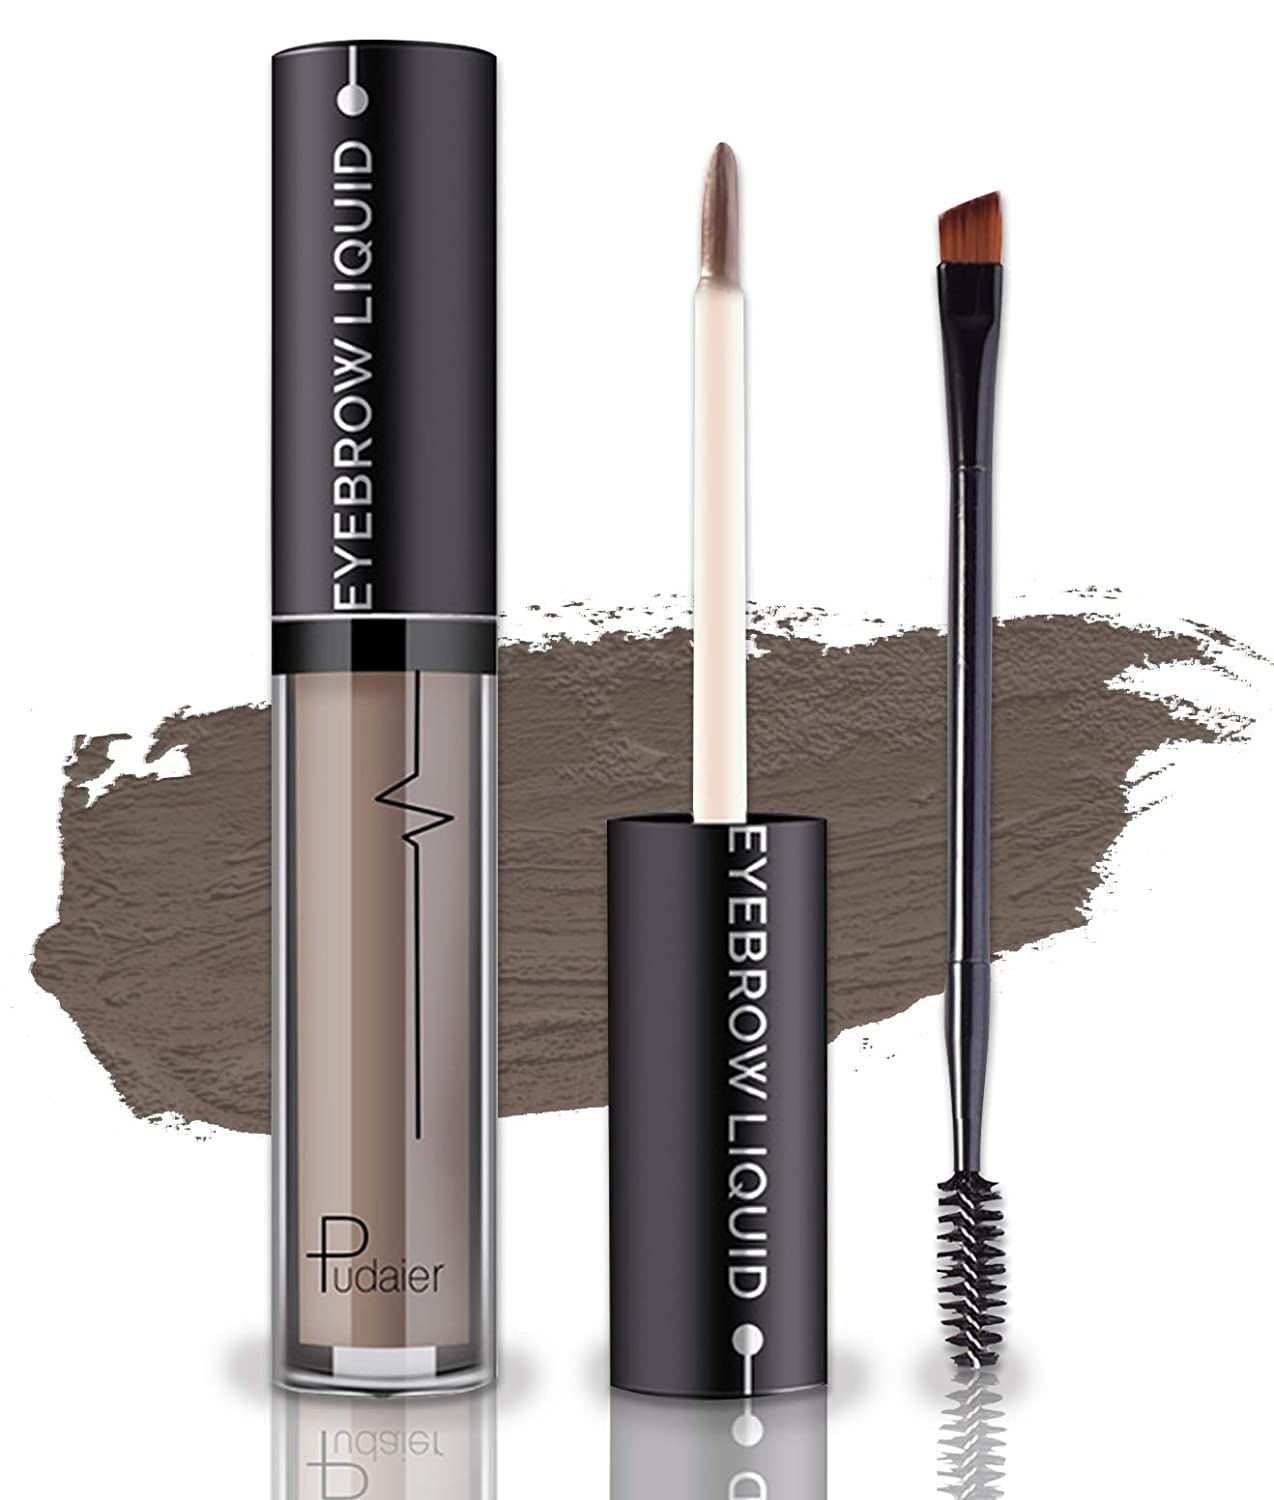 Waterproof Eyebrow Gel, Long Lasting Smudge-Proof Liquid Brow Makeup Tint, Brow Shaper with Mascara Primer Brush Wand Kit Mother's Day Gift ( Color-Ash Brown)